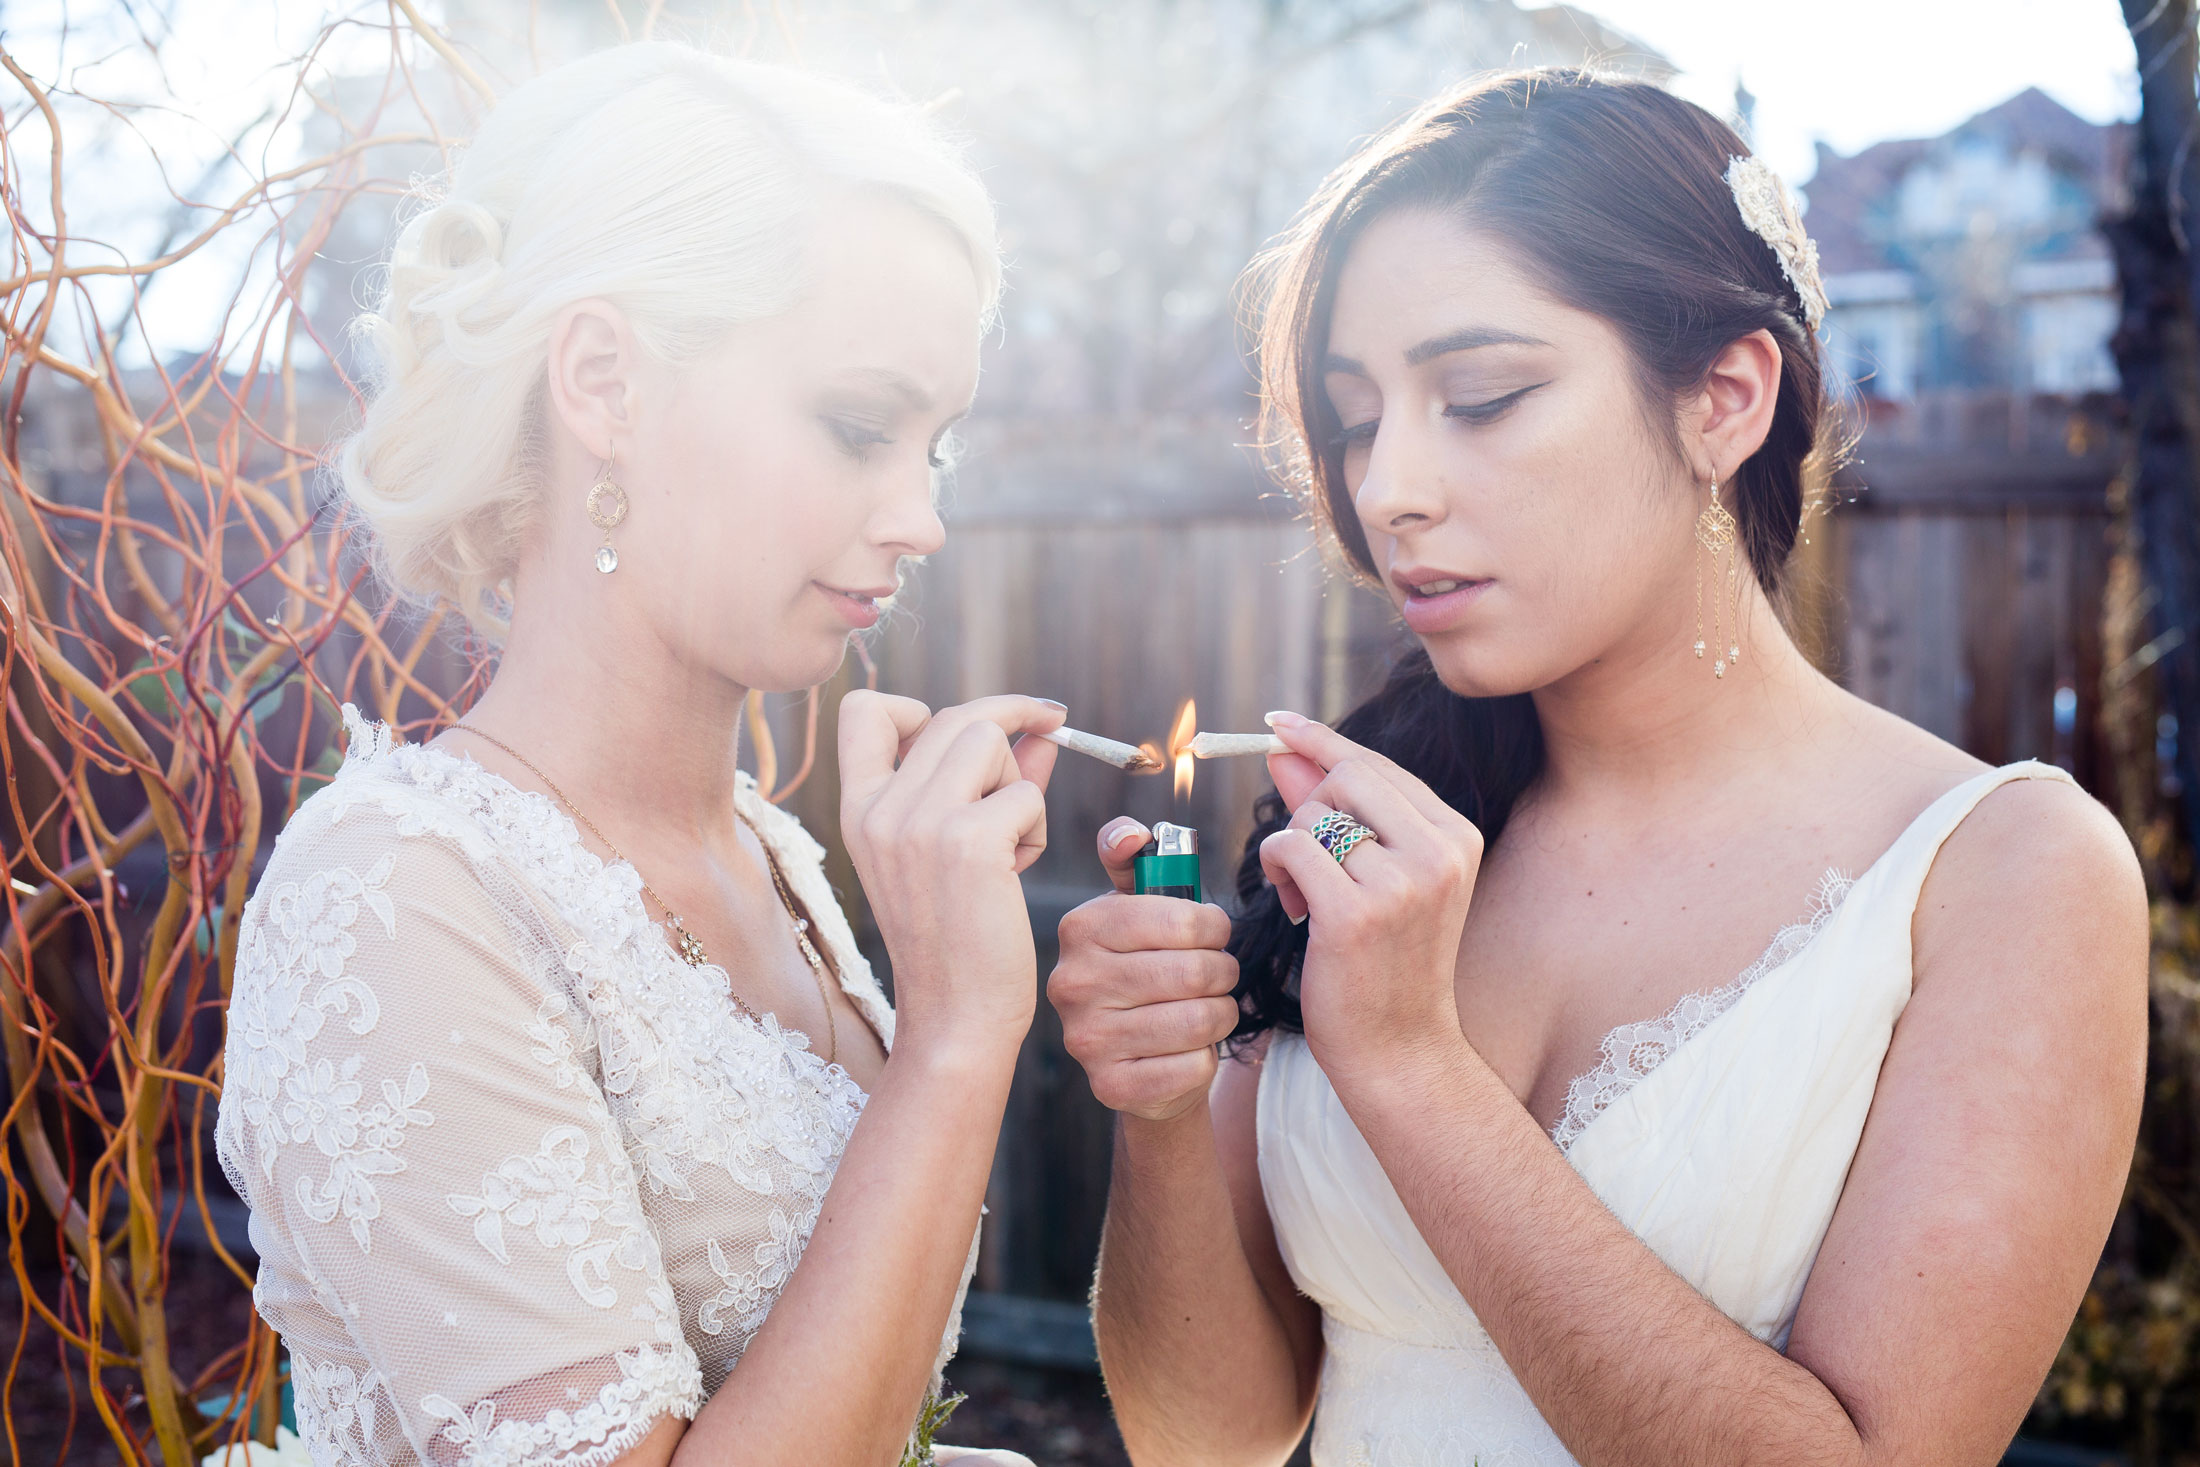 Image result for weed wedding